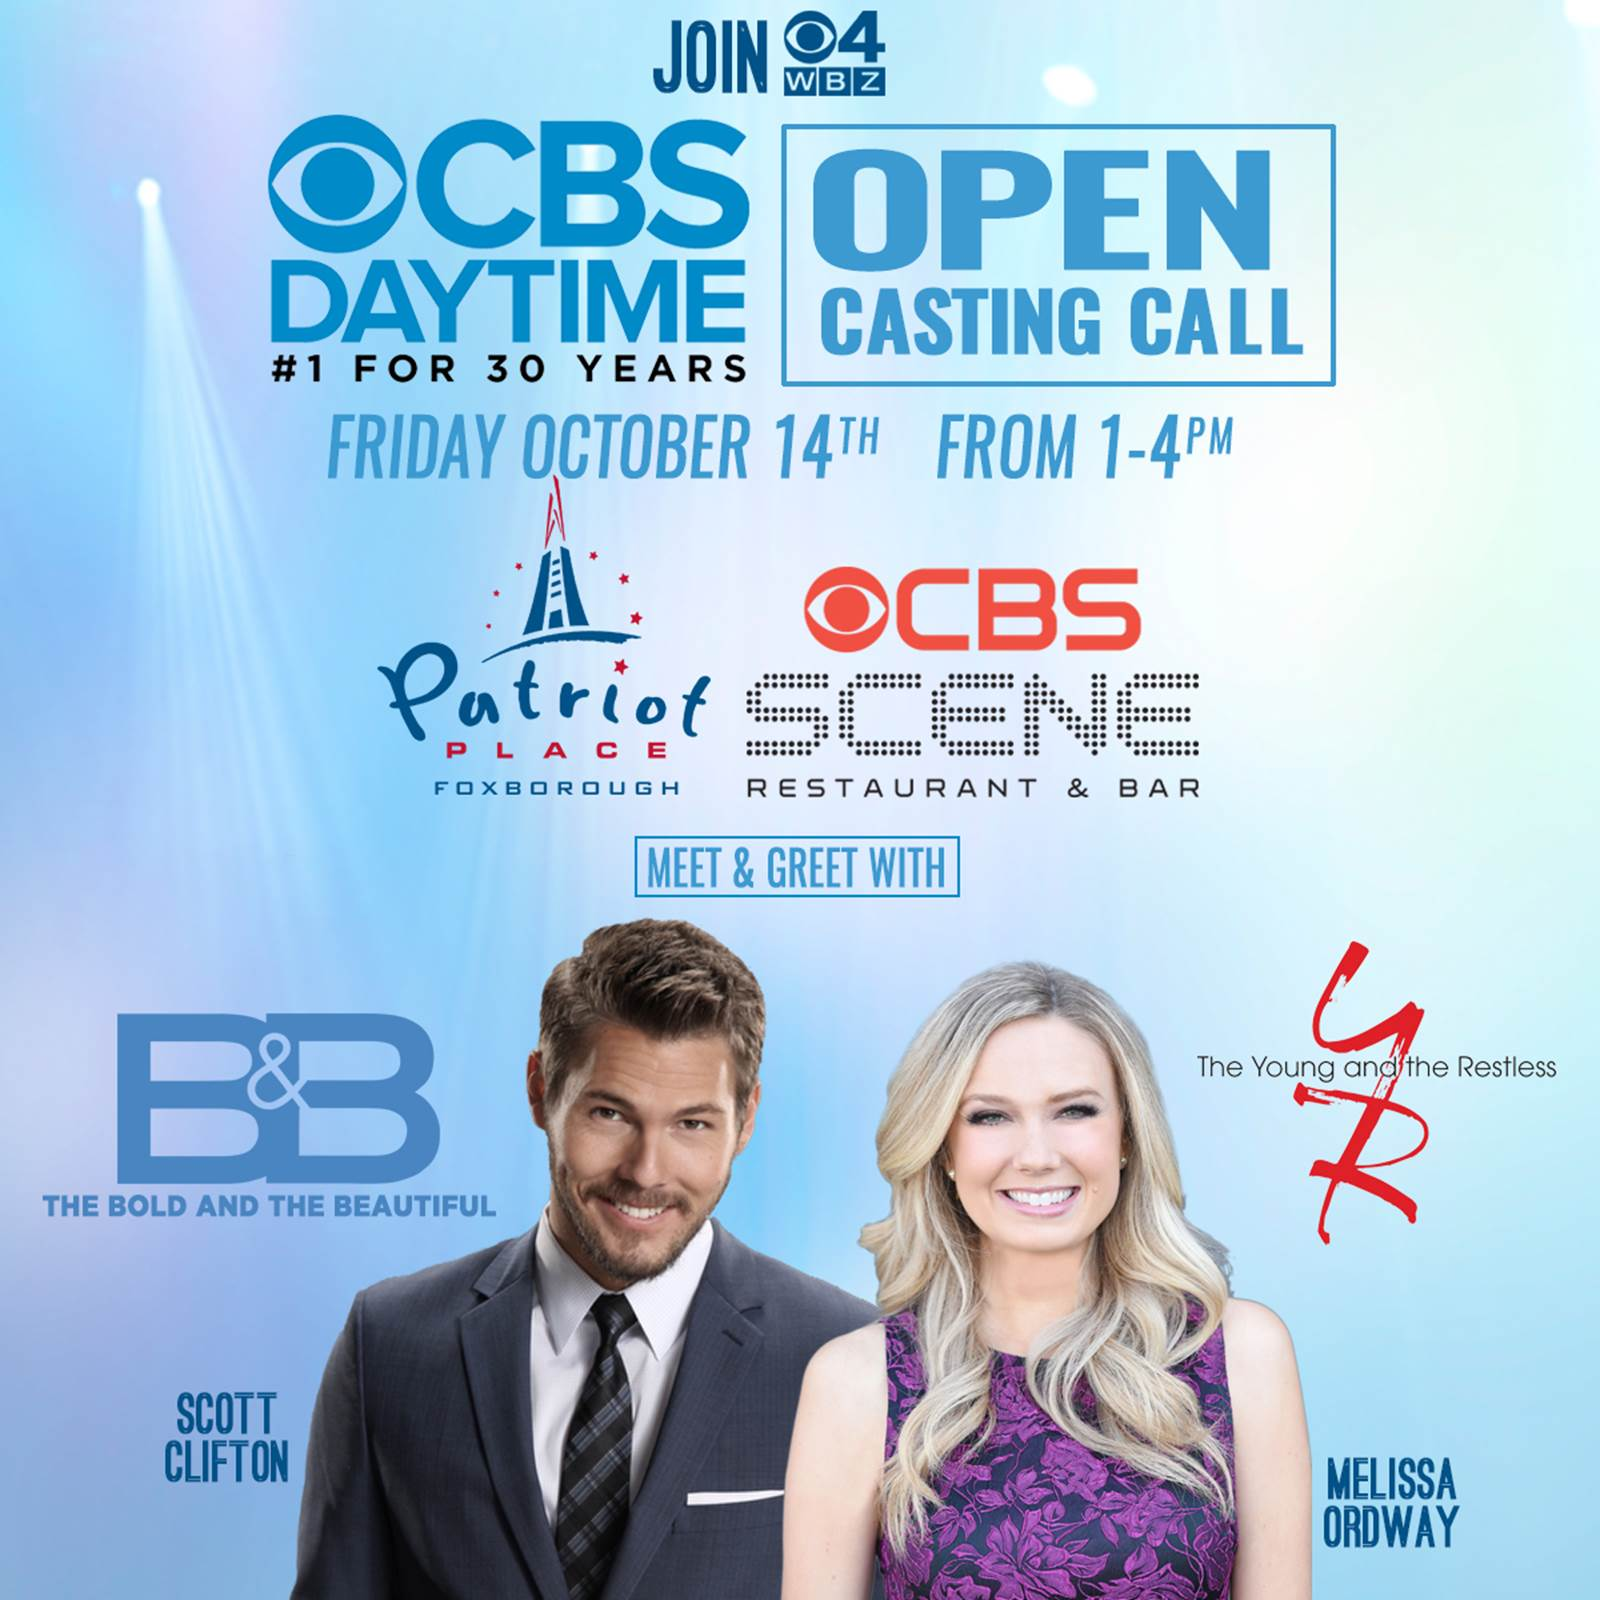 Cbs Daytime Casting Call In Boston Soap Opera Digest